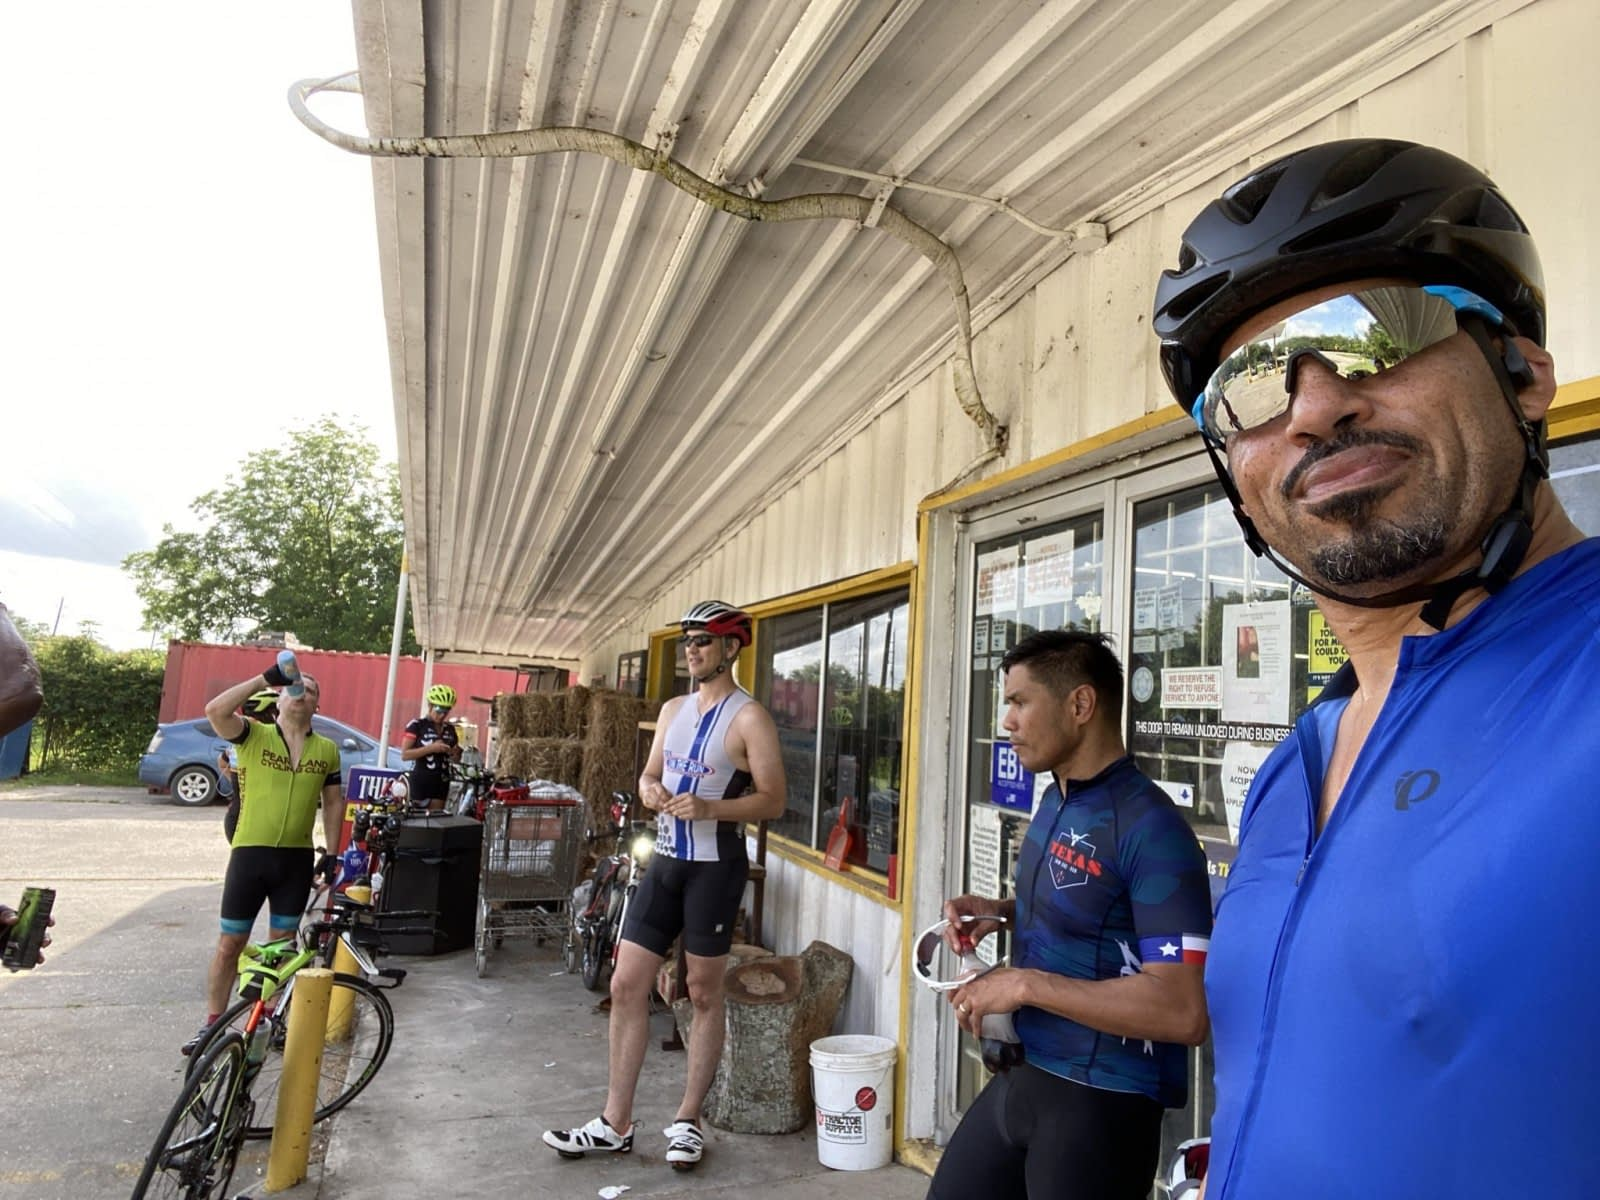 Group at the rest stop